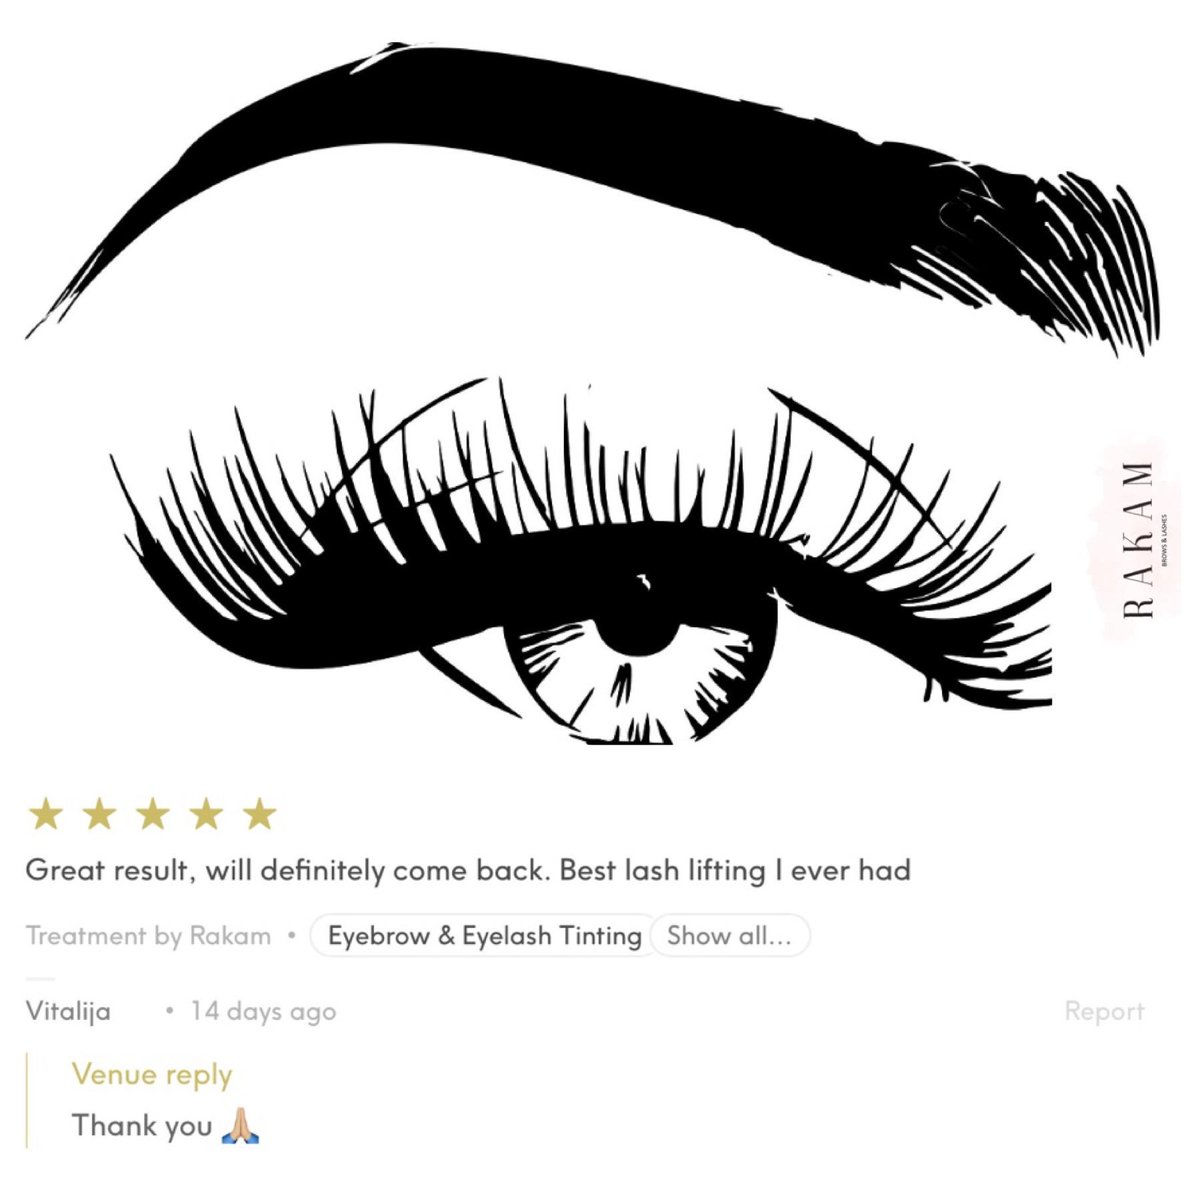 267da3fb464 R A K A M Brows & Lashes - London, Gielly Green and Treatwell